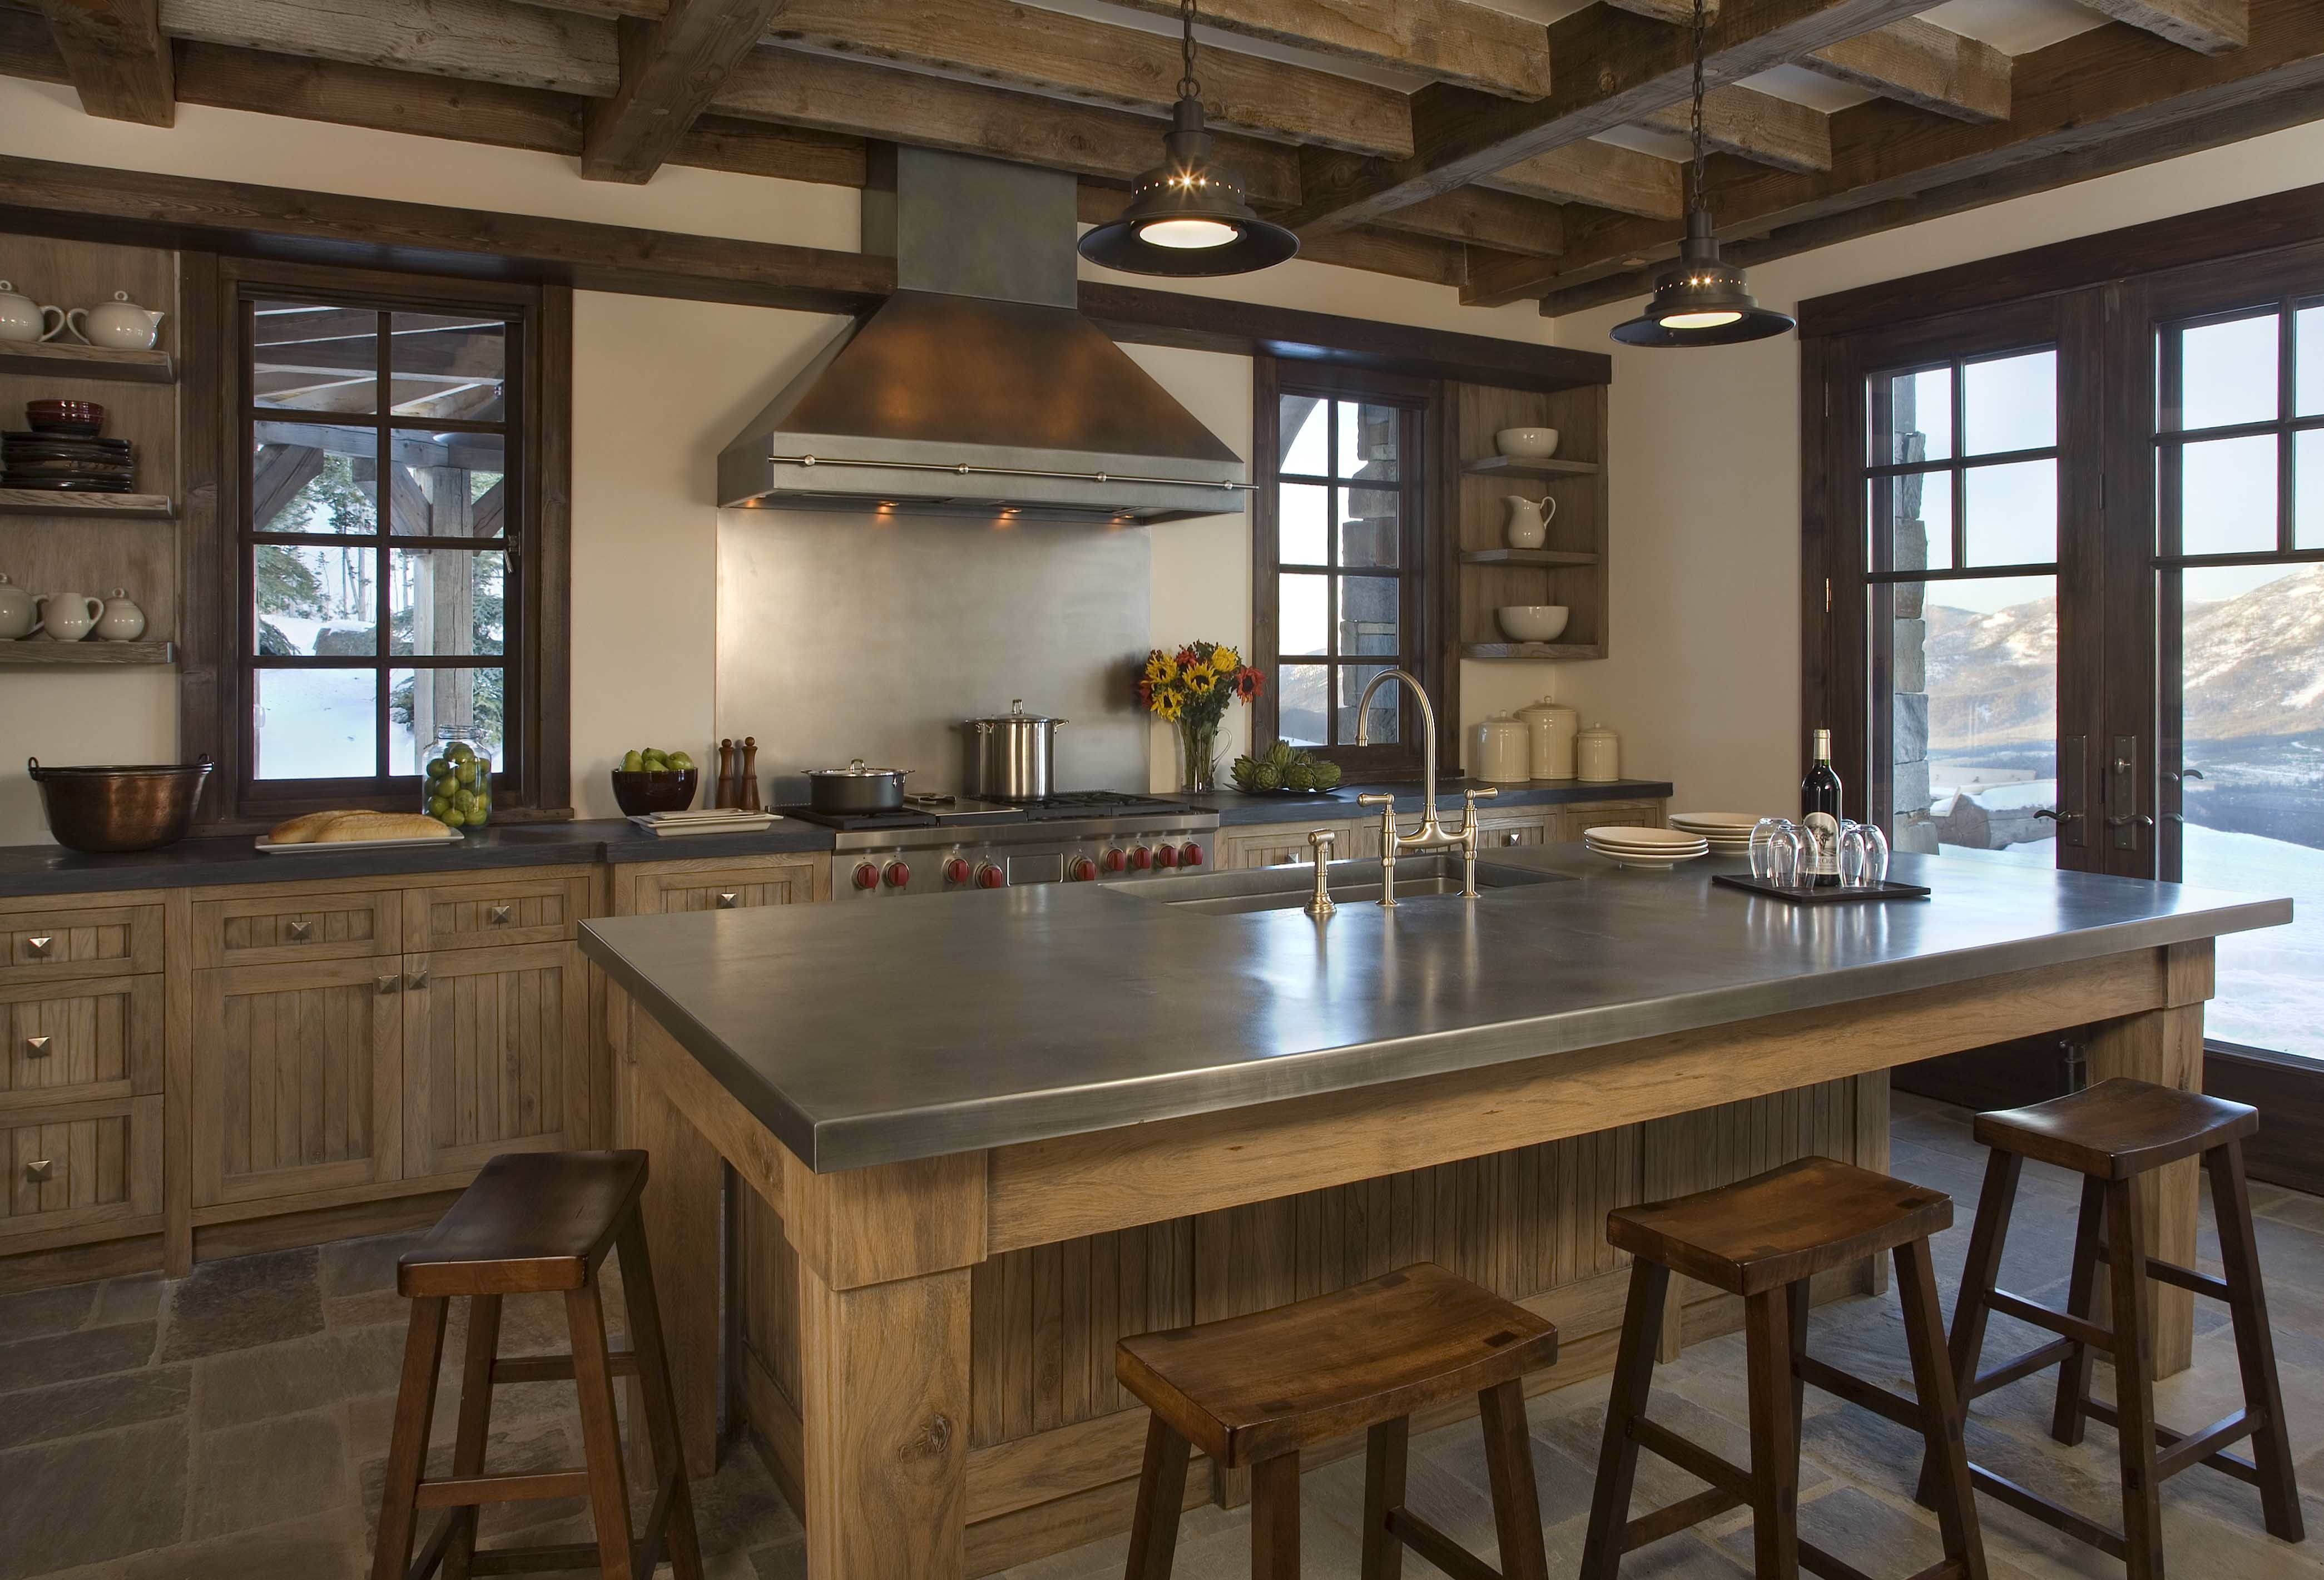 cabininspired interiors cabin interiors and rustic kitchen